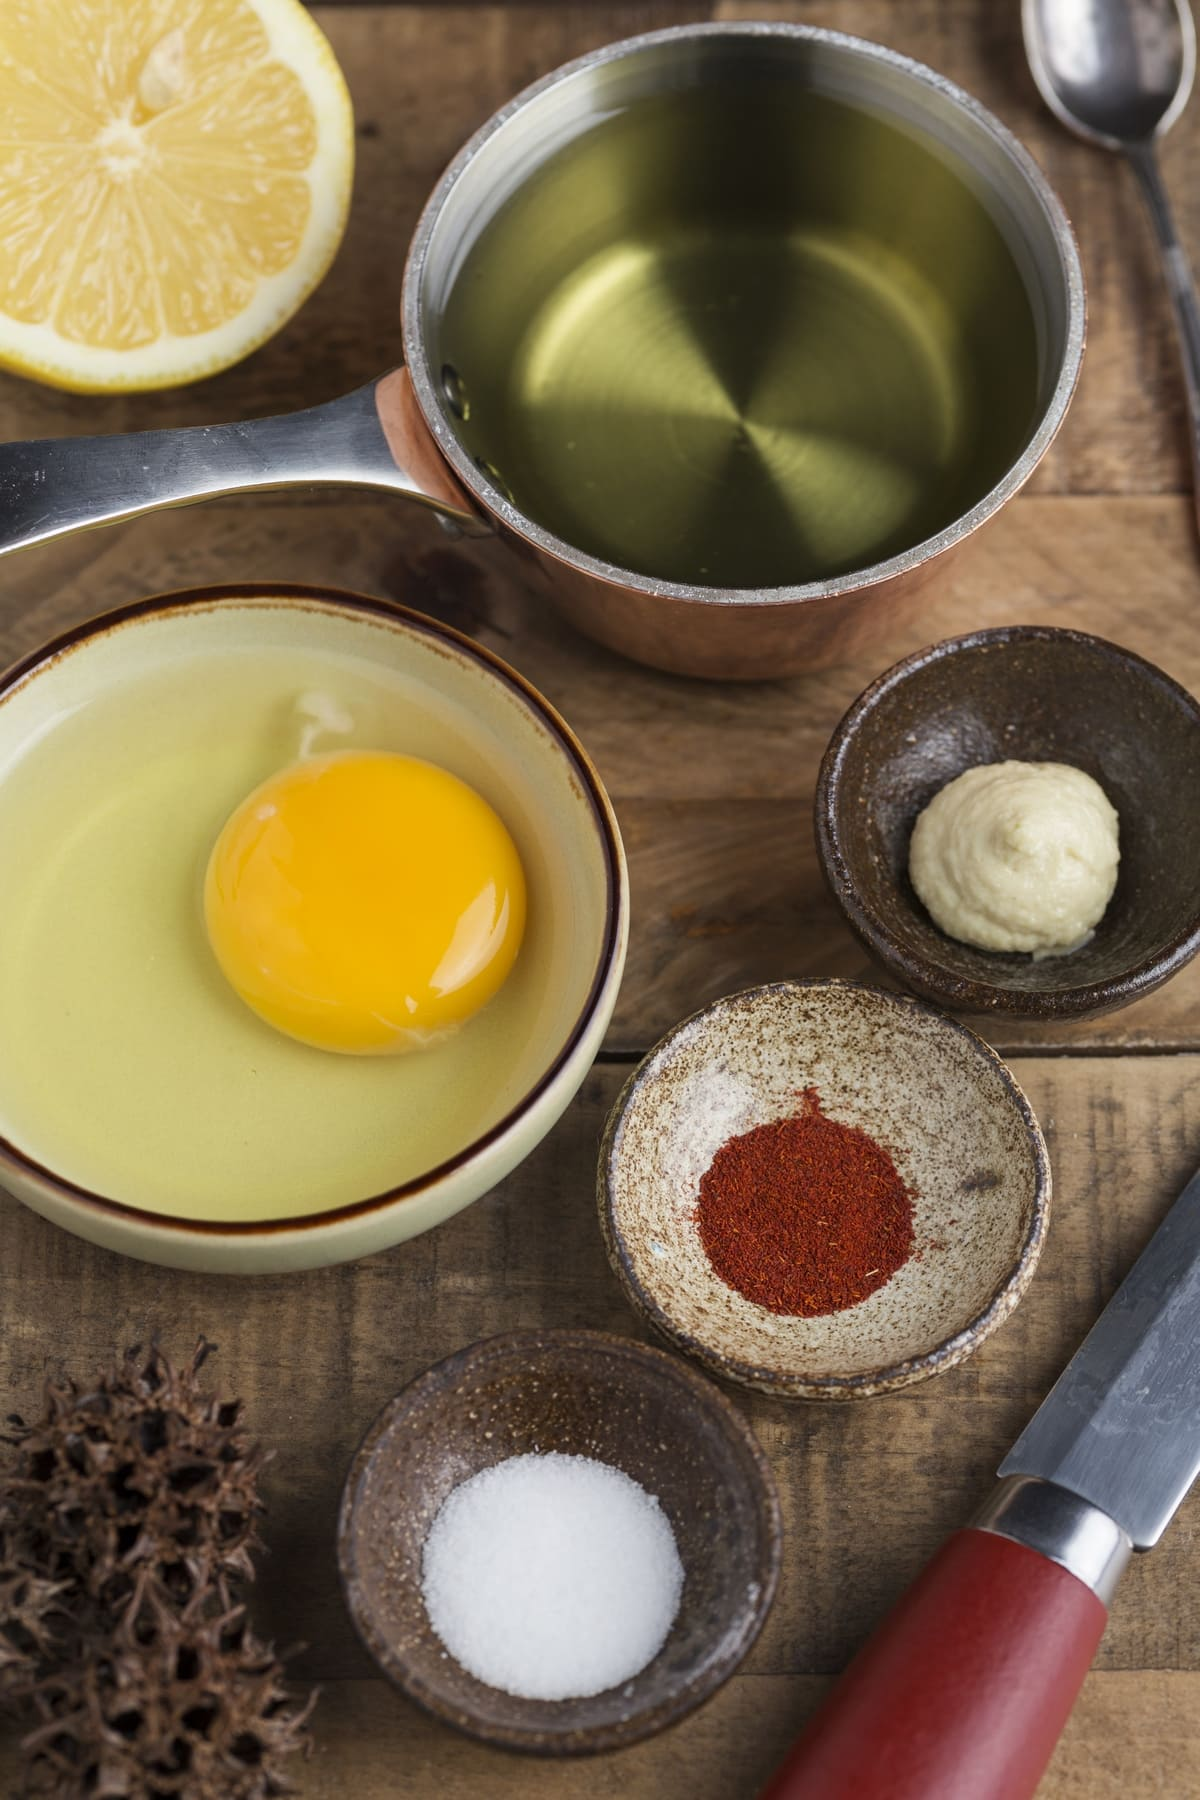 Small bowls containing spices, egg, oil and a half lemon.